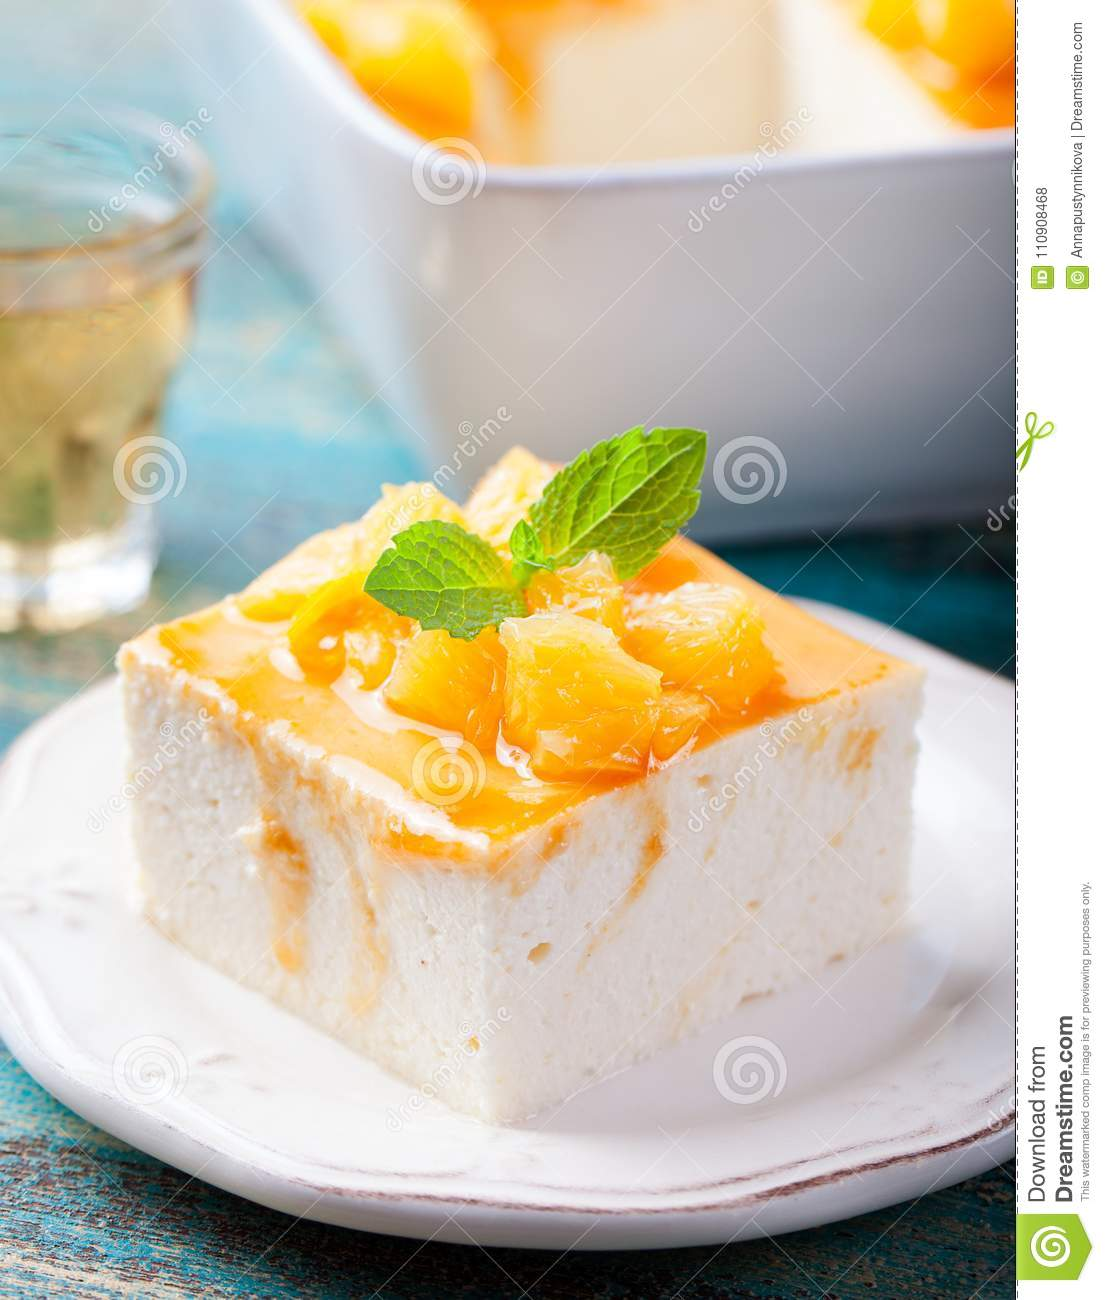 Cottage Cheese With Jam: Cheesecake, Cottage Cheese Pudding Stock Photo